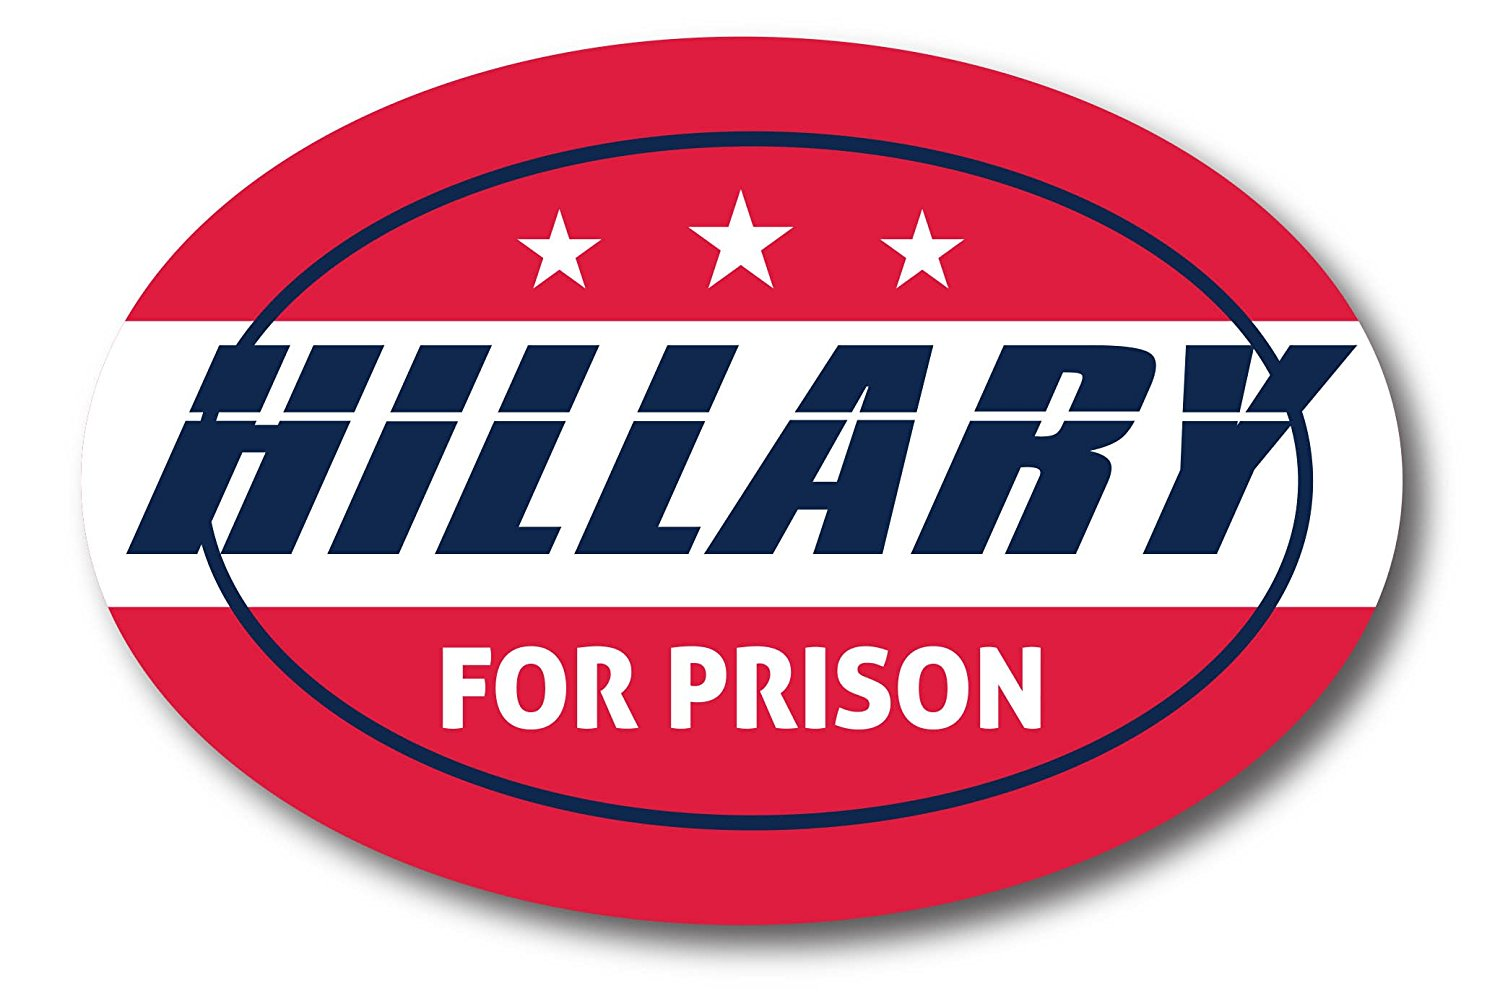 Hillary For Prison 2016 Oval Magnet - Cars Trucks SUVs